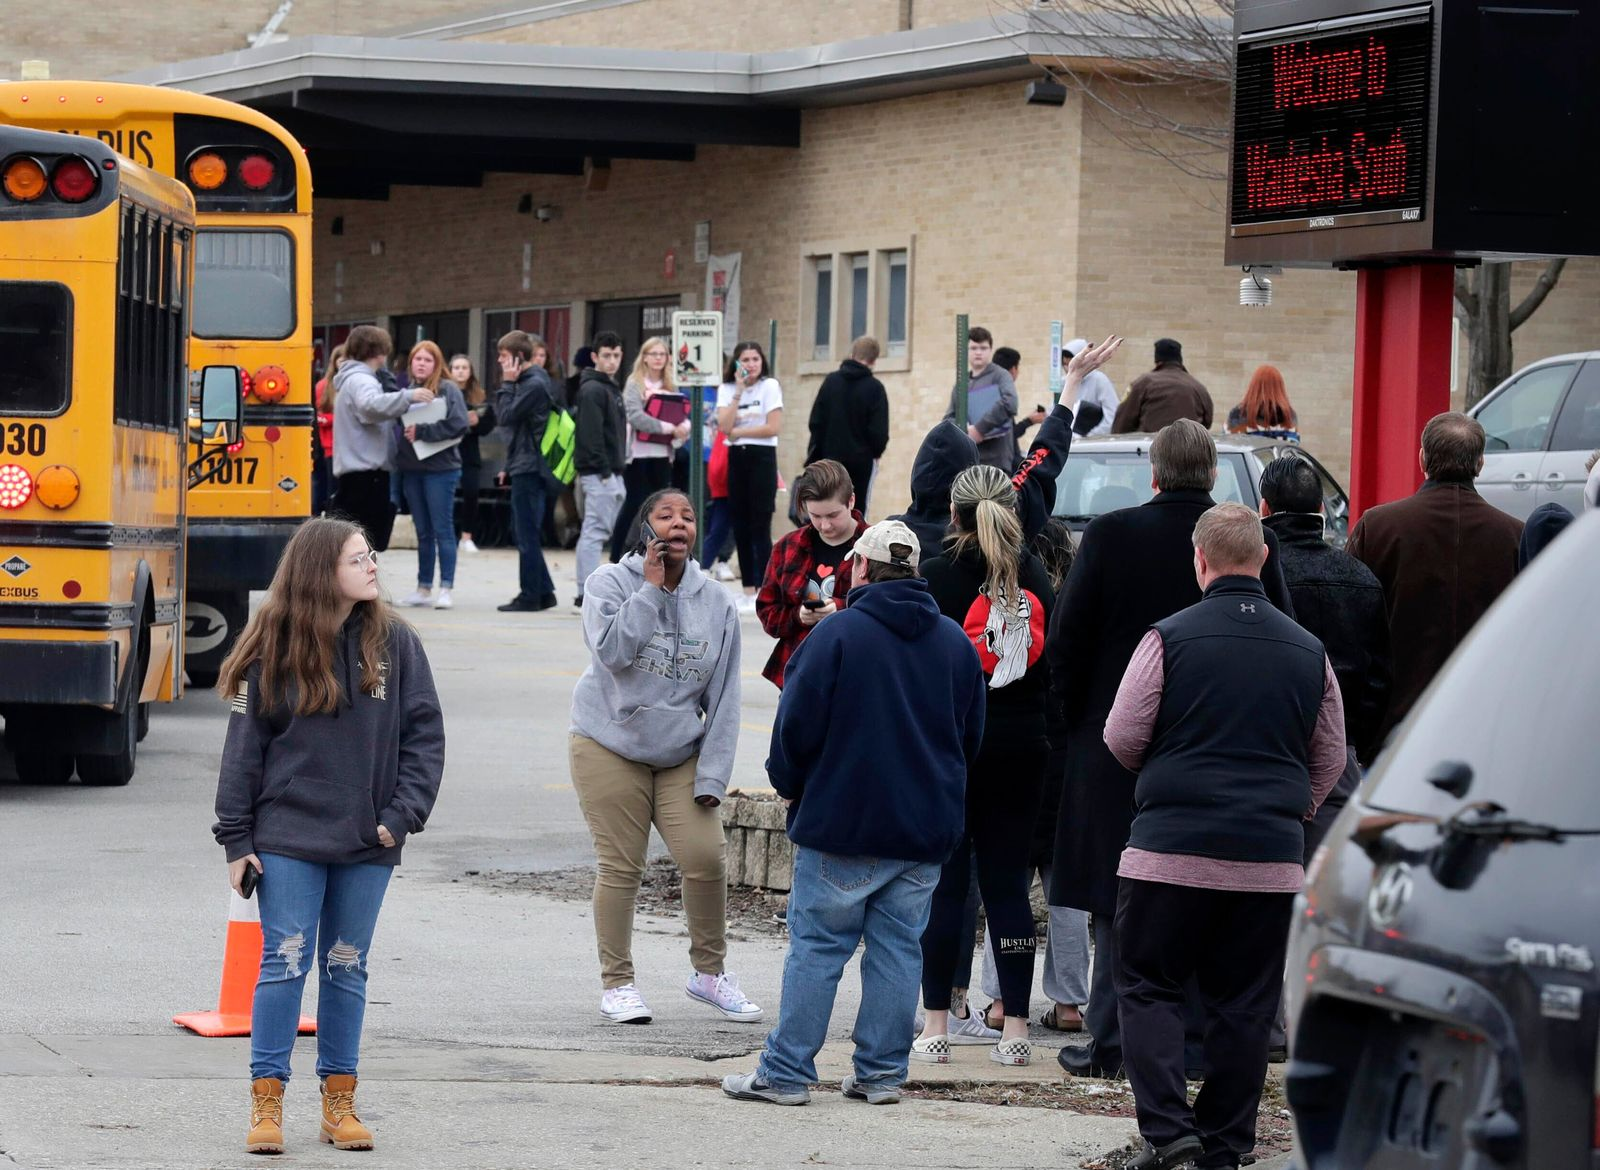 Waukesha South High School students find their waiting parents and friends and hug after they leave the building following shots fired inside the school, Monday, December 2, 2019. (Rick Wood/Milwaukee Journal-Sentinel via AP)